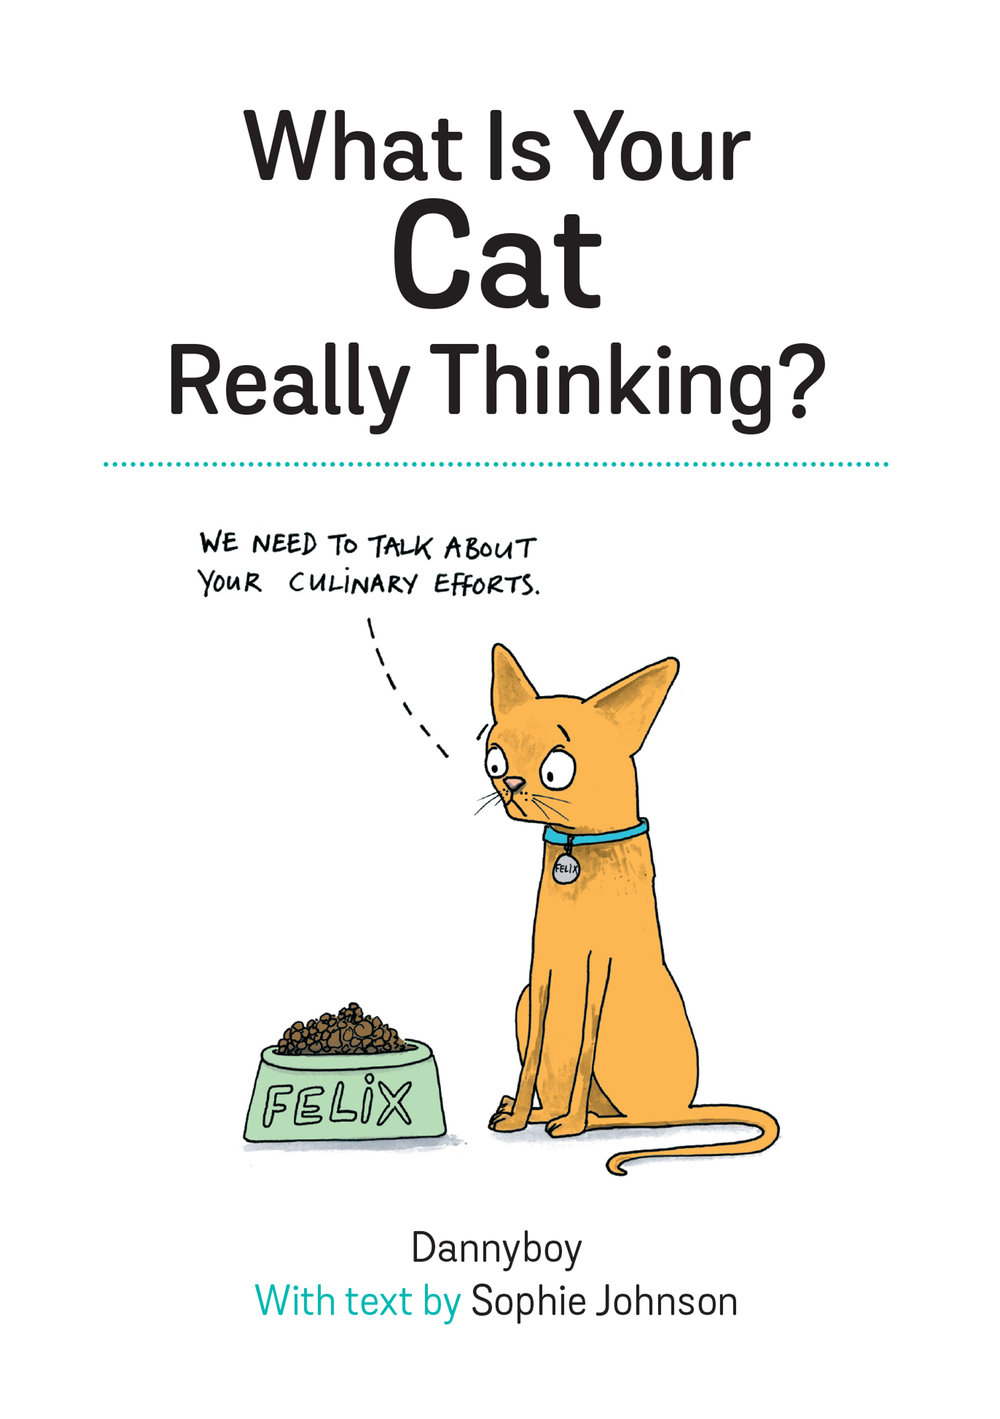 What is your Cat Really Thinking? (published by Summersdale)